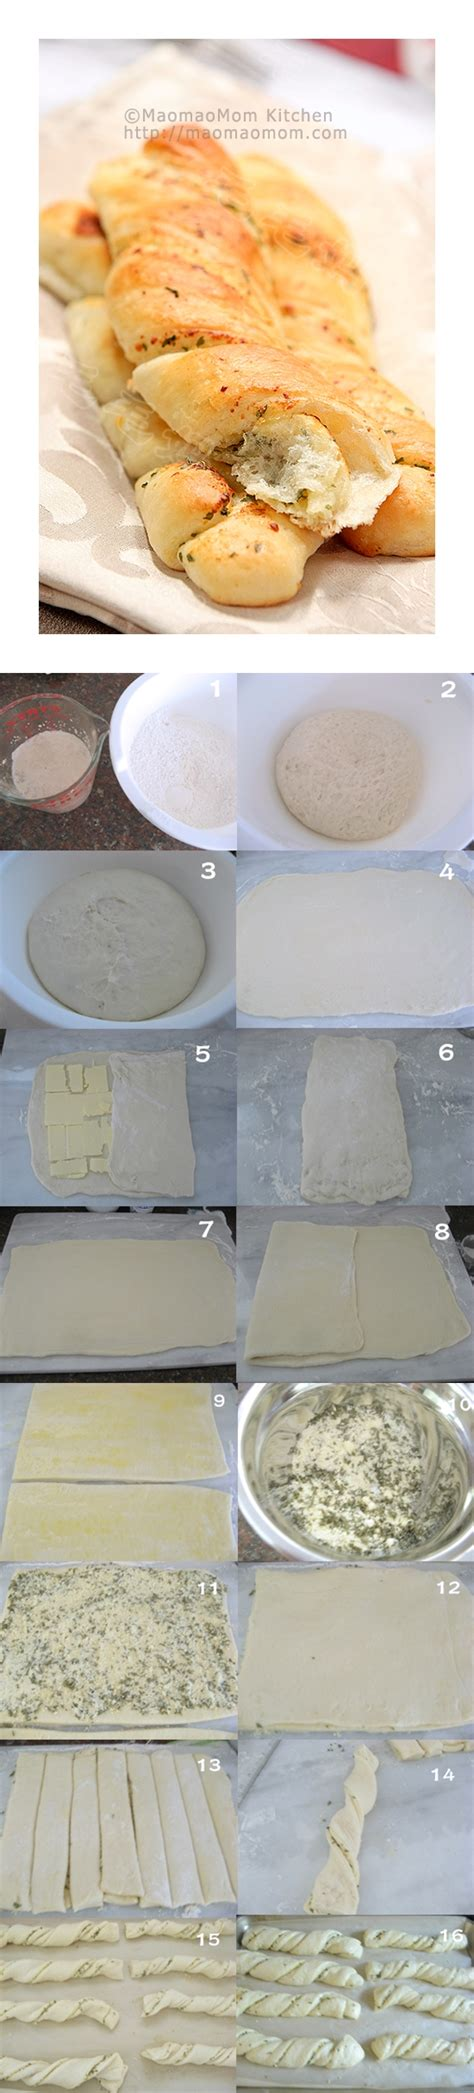 successful cheesemakingã step by step directions photos for nearly every type of cheese books how to cook parmesan cheese breadsticks step by image